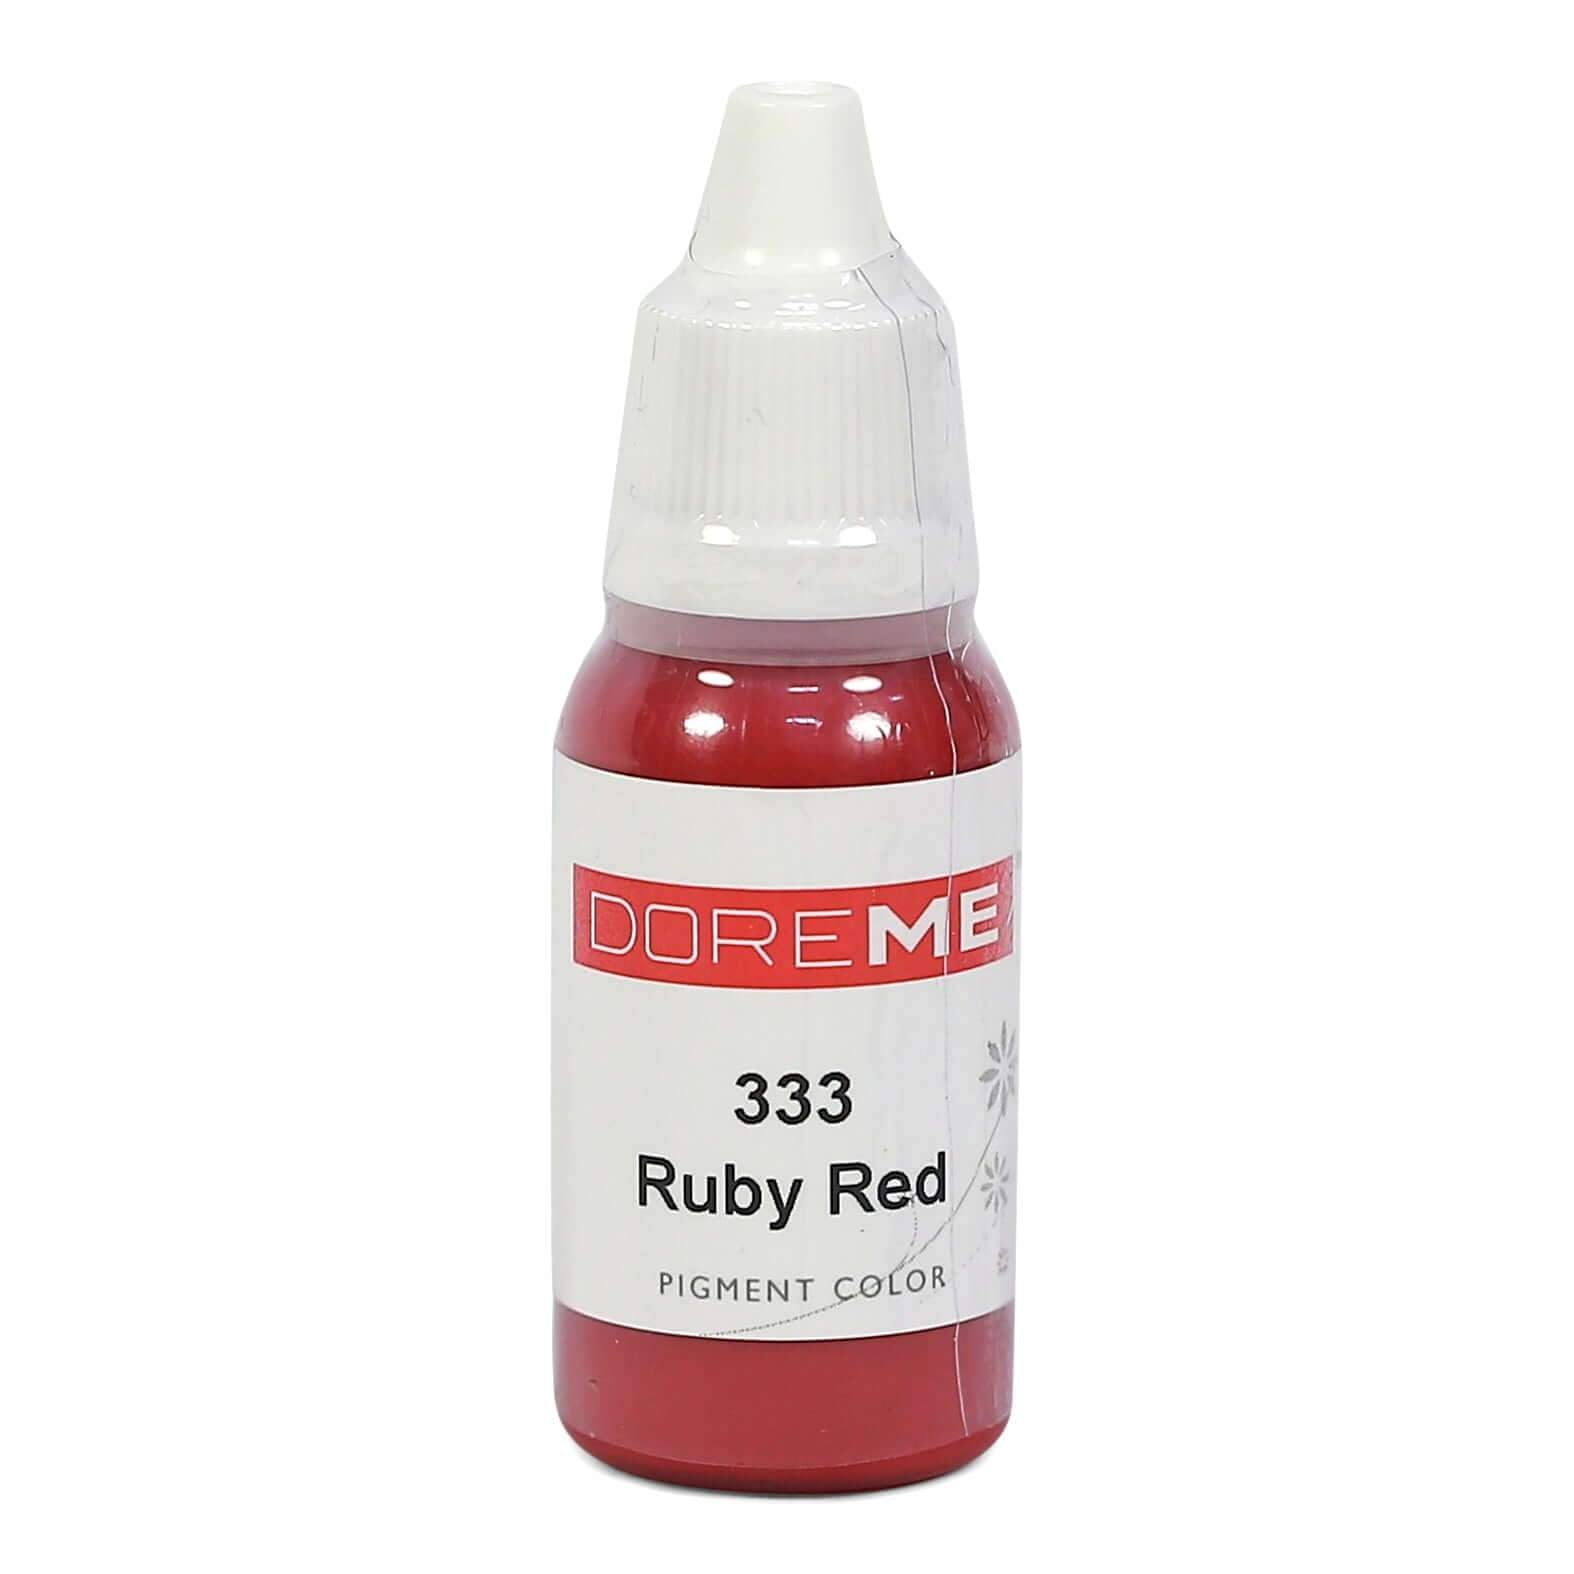 Permanent Makeup pigments Doreme Micropigmentation Eyebrow, Eyeliner, Lip Colours 333 Ruby Red (c) - Beautiful Ink UK trade and wholesale supplier